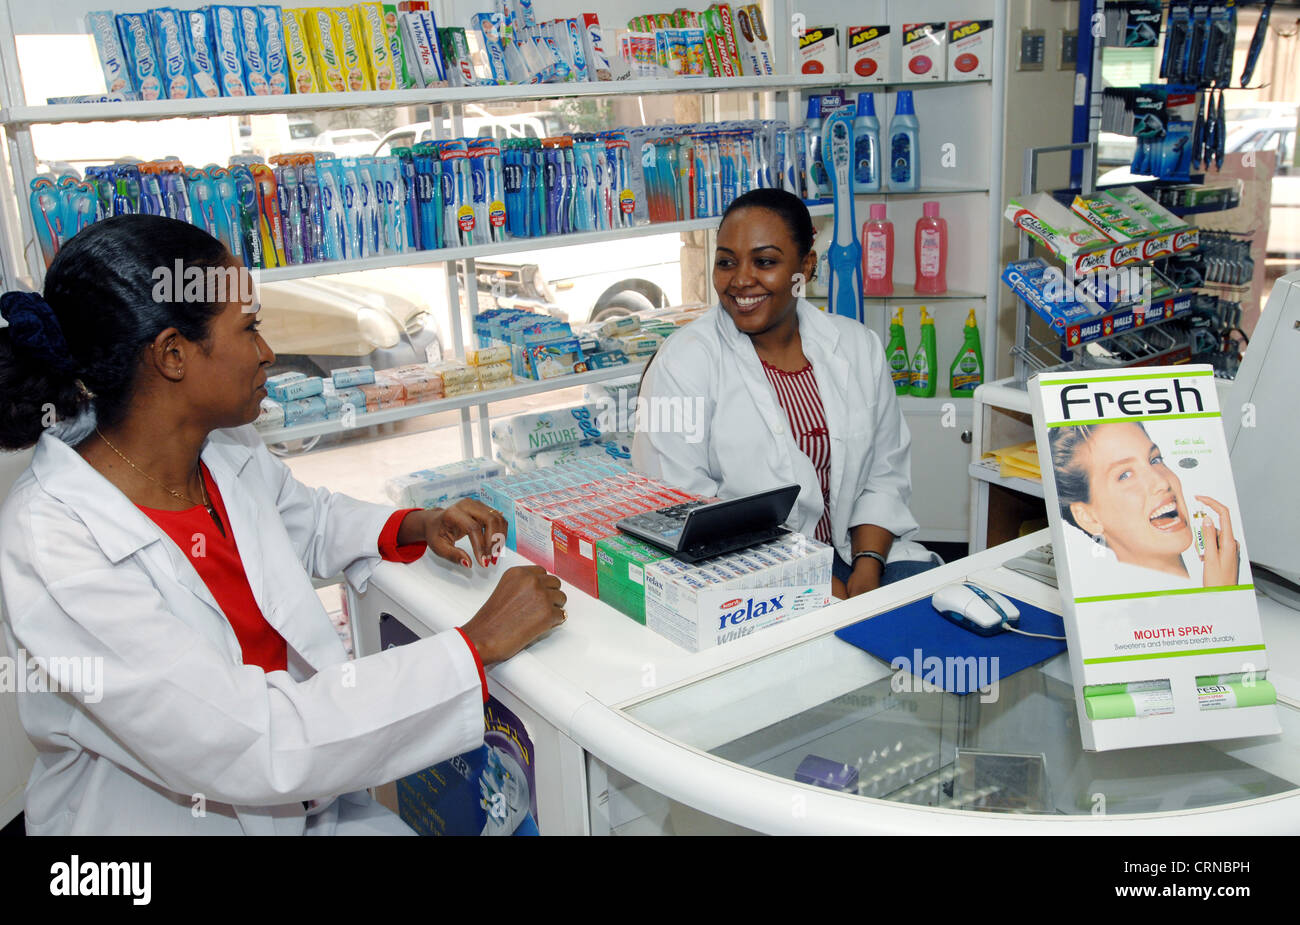 Female Pharmacist And Cashier Discuss Current Medical Supplies Stock